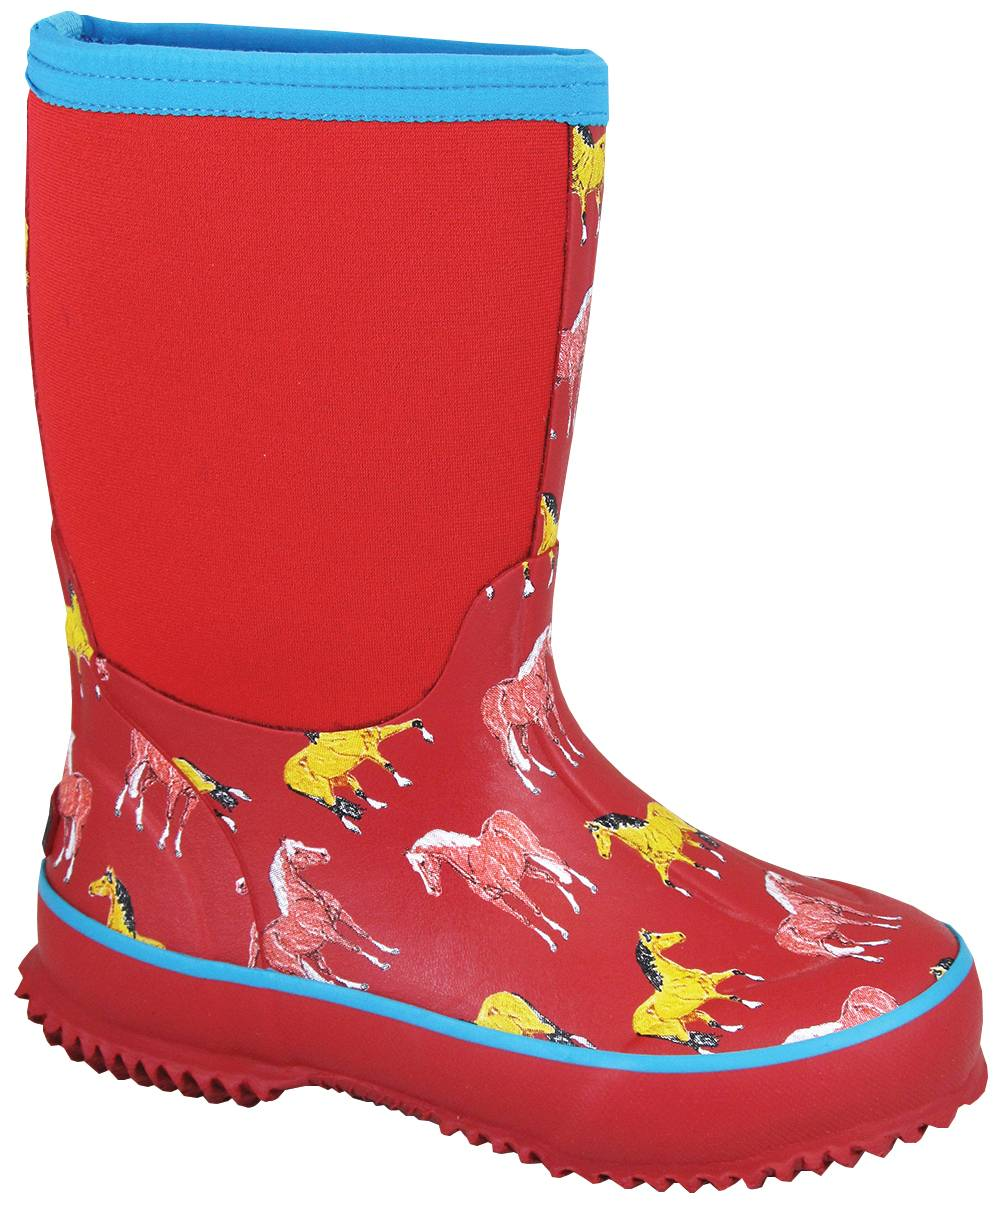 Smoky Mountain Childs Horsin Around Amphibian Boots